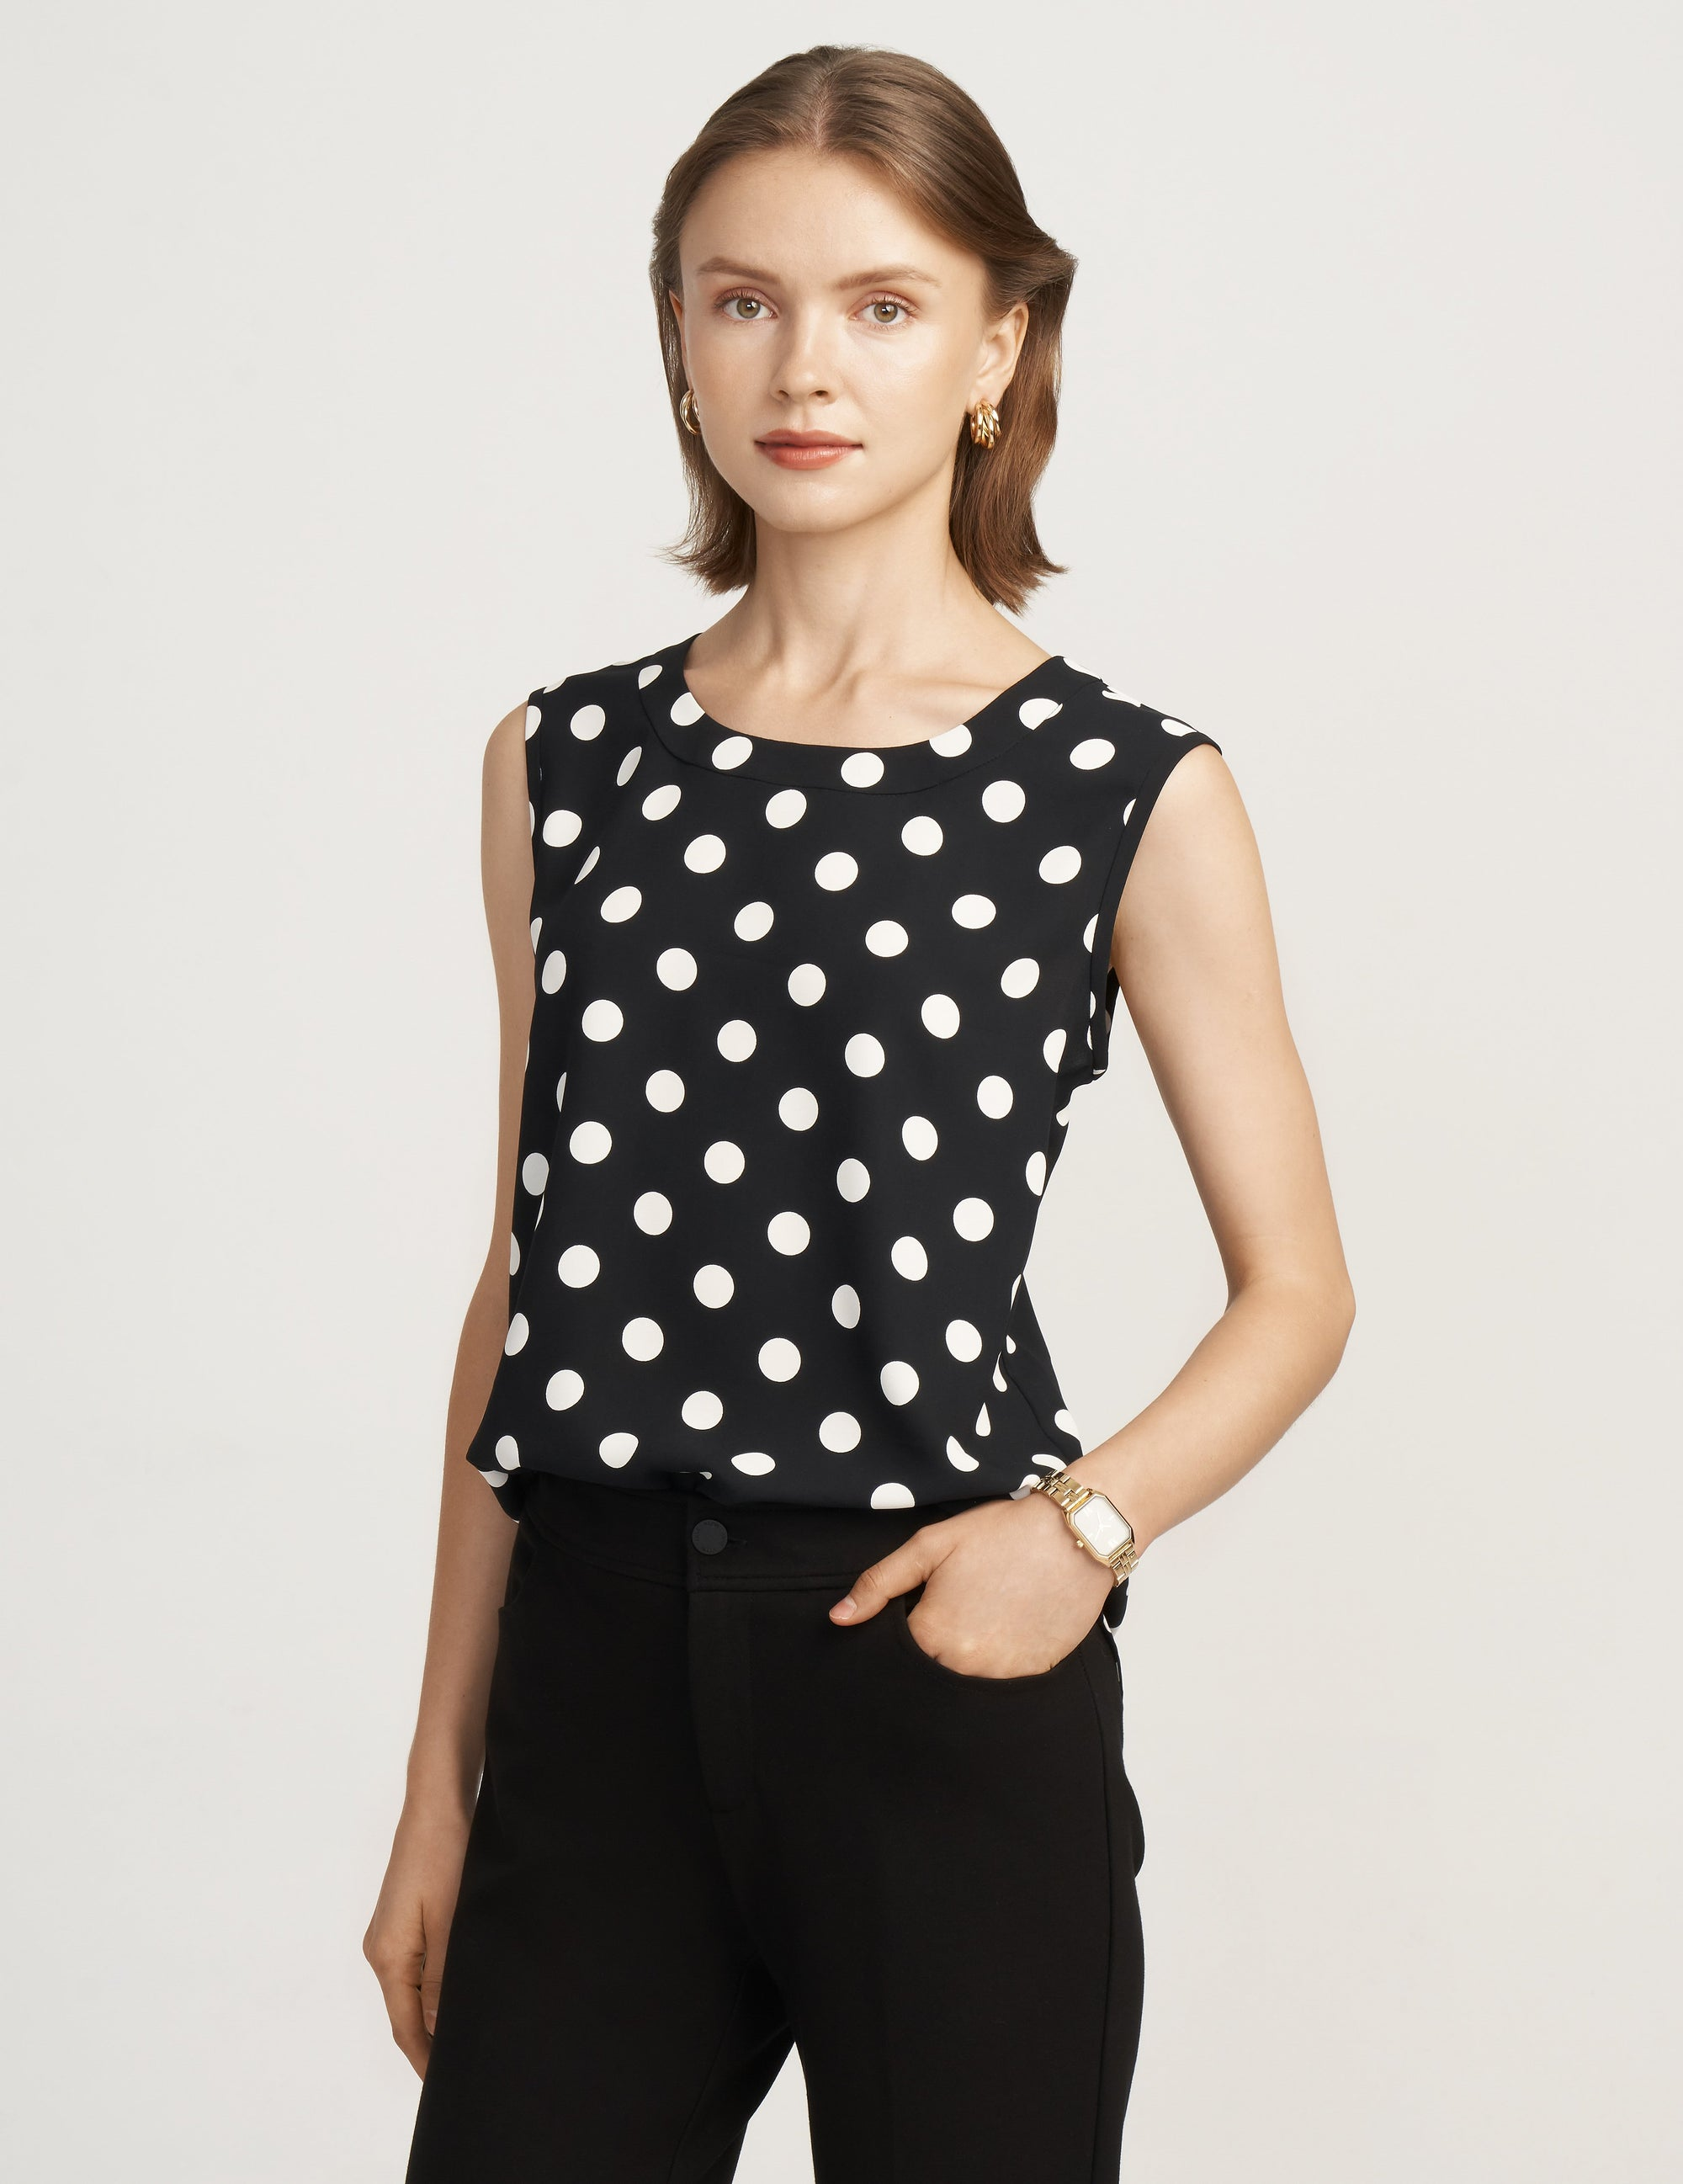 Anne Klein Black/White Dot Print Sleeveless U-Neck Shell